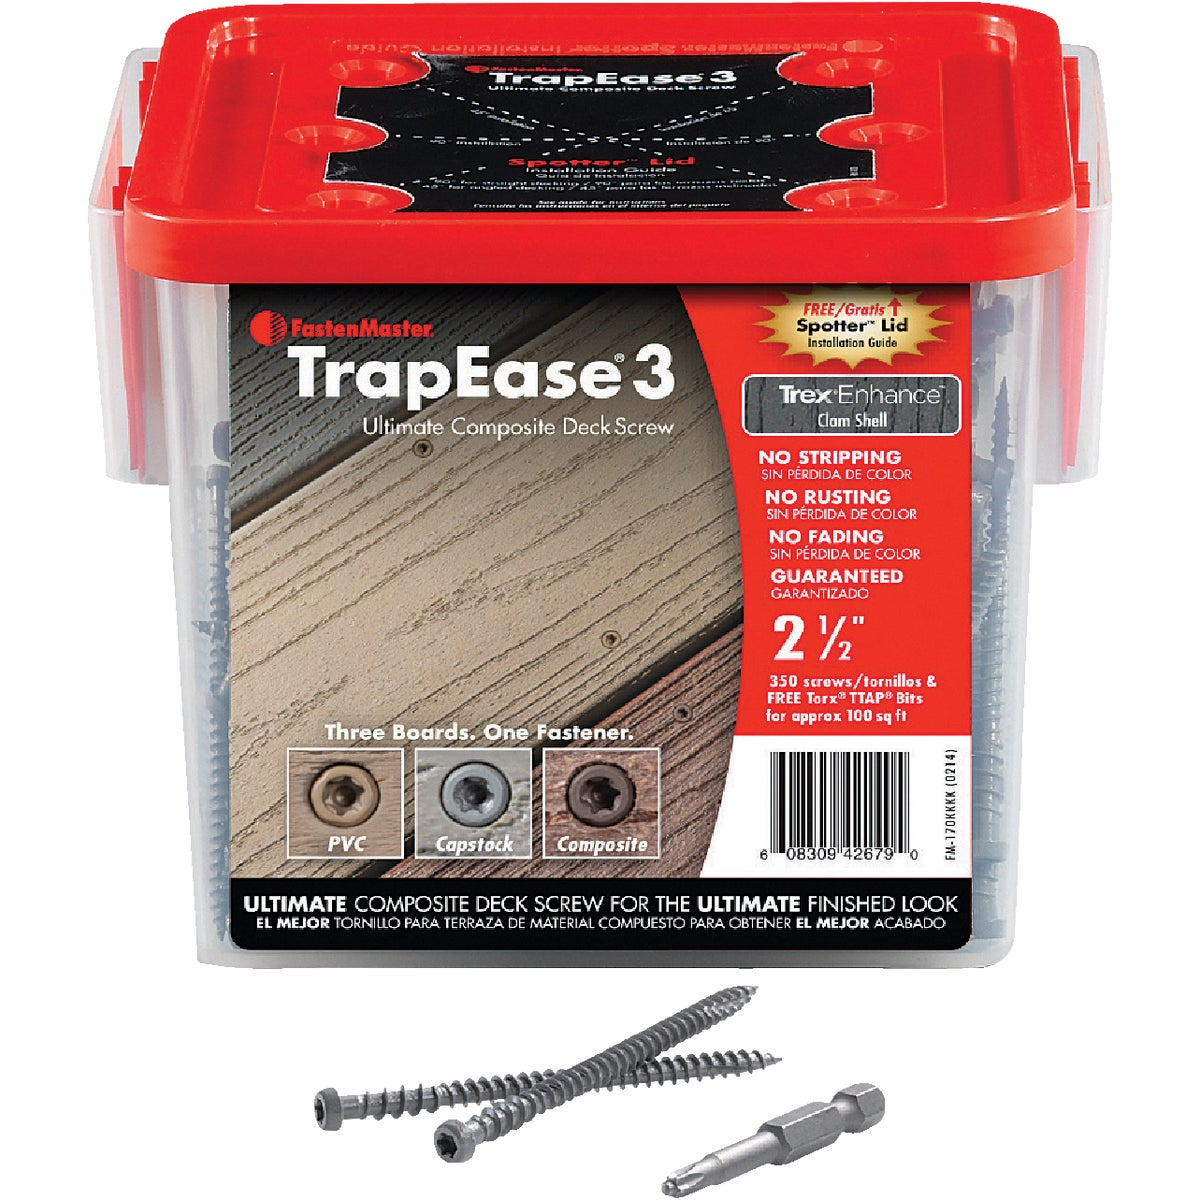 Brn Trapease3 Deck Screw